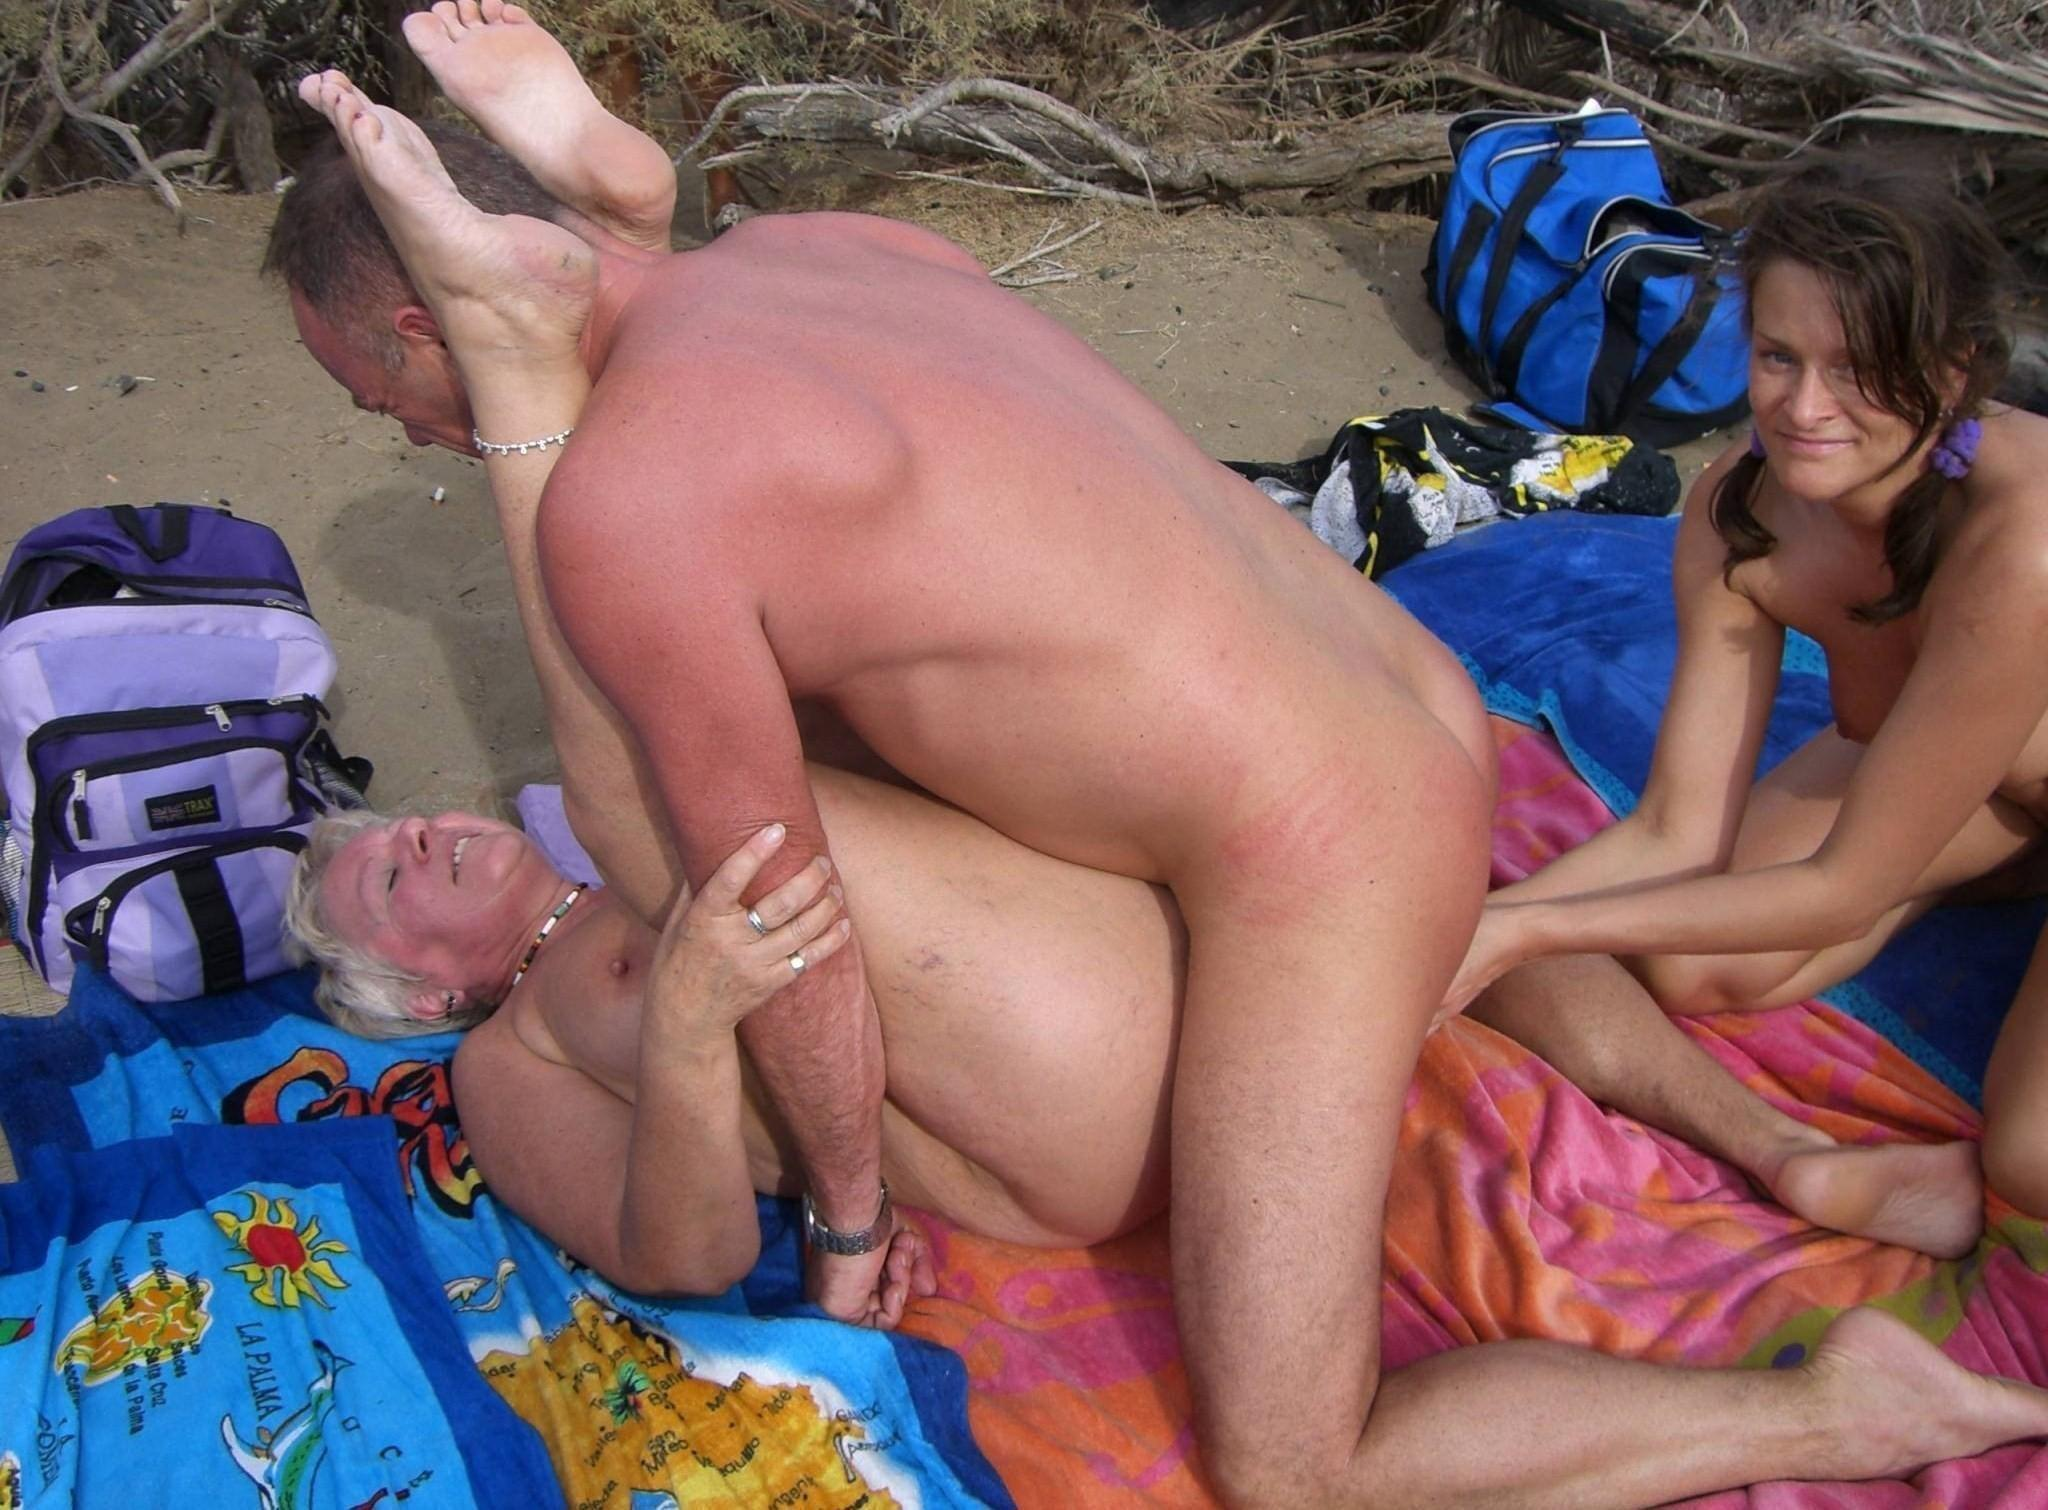 Mother son nude beach sex 12